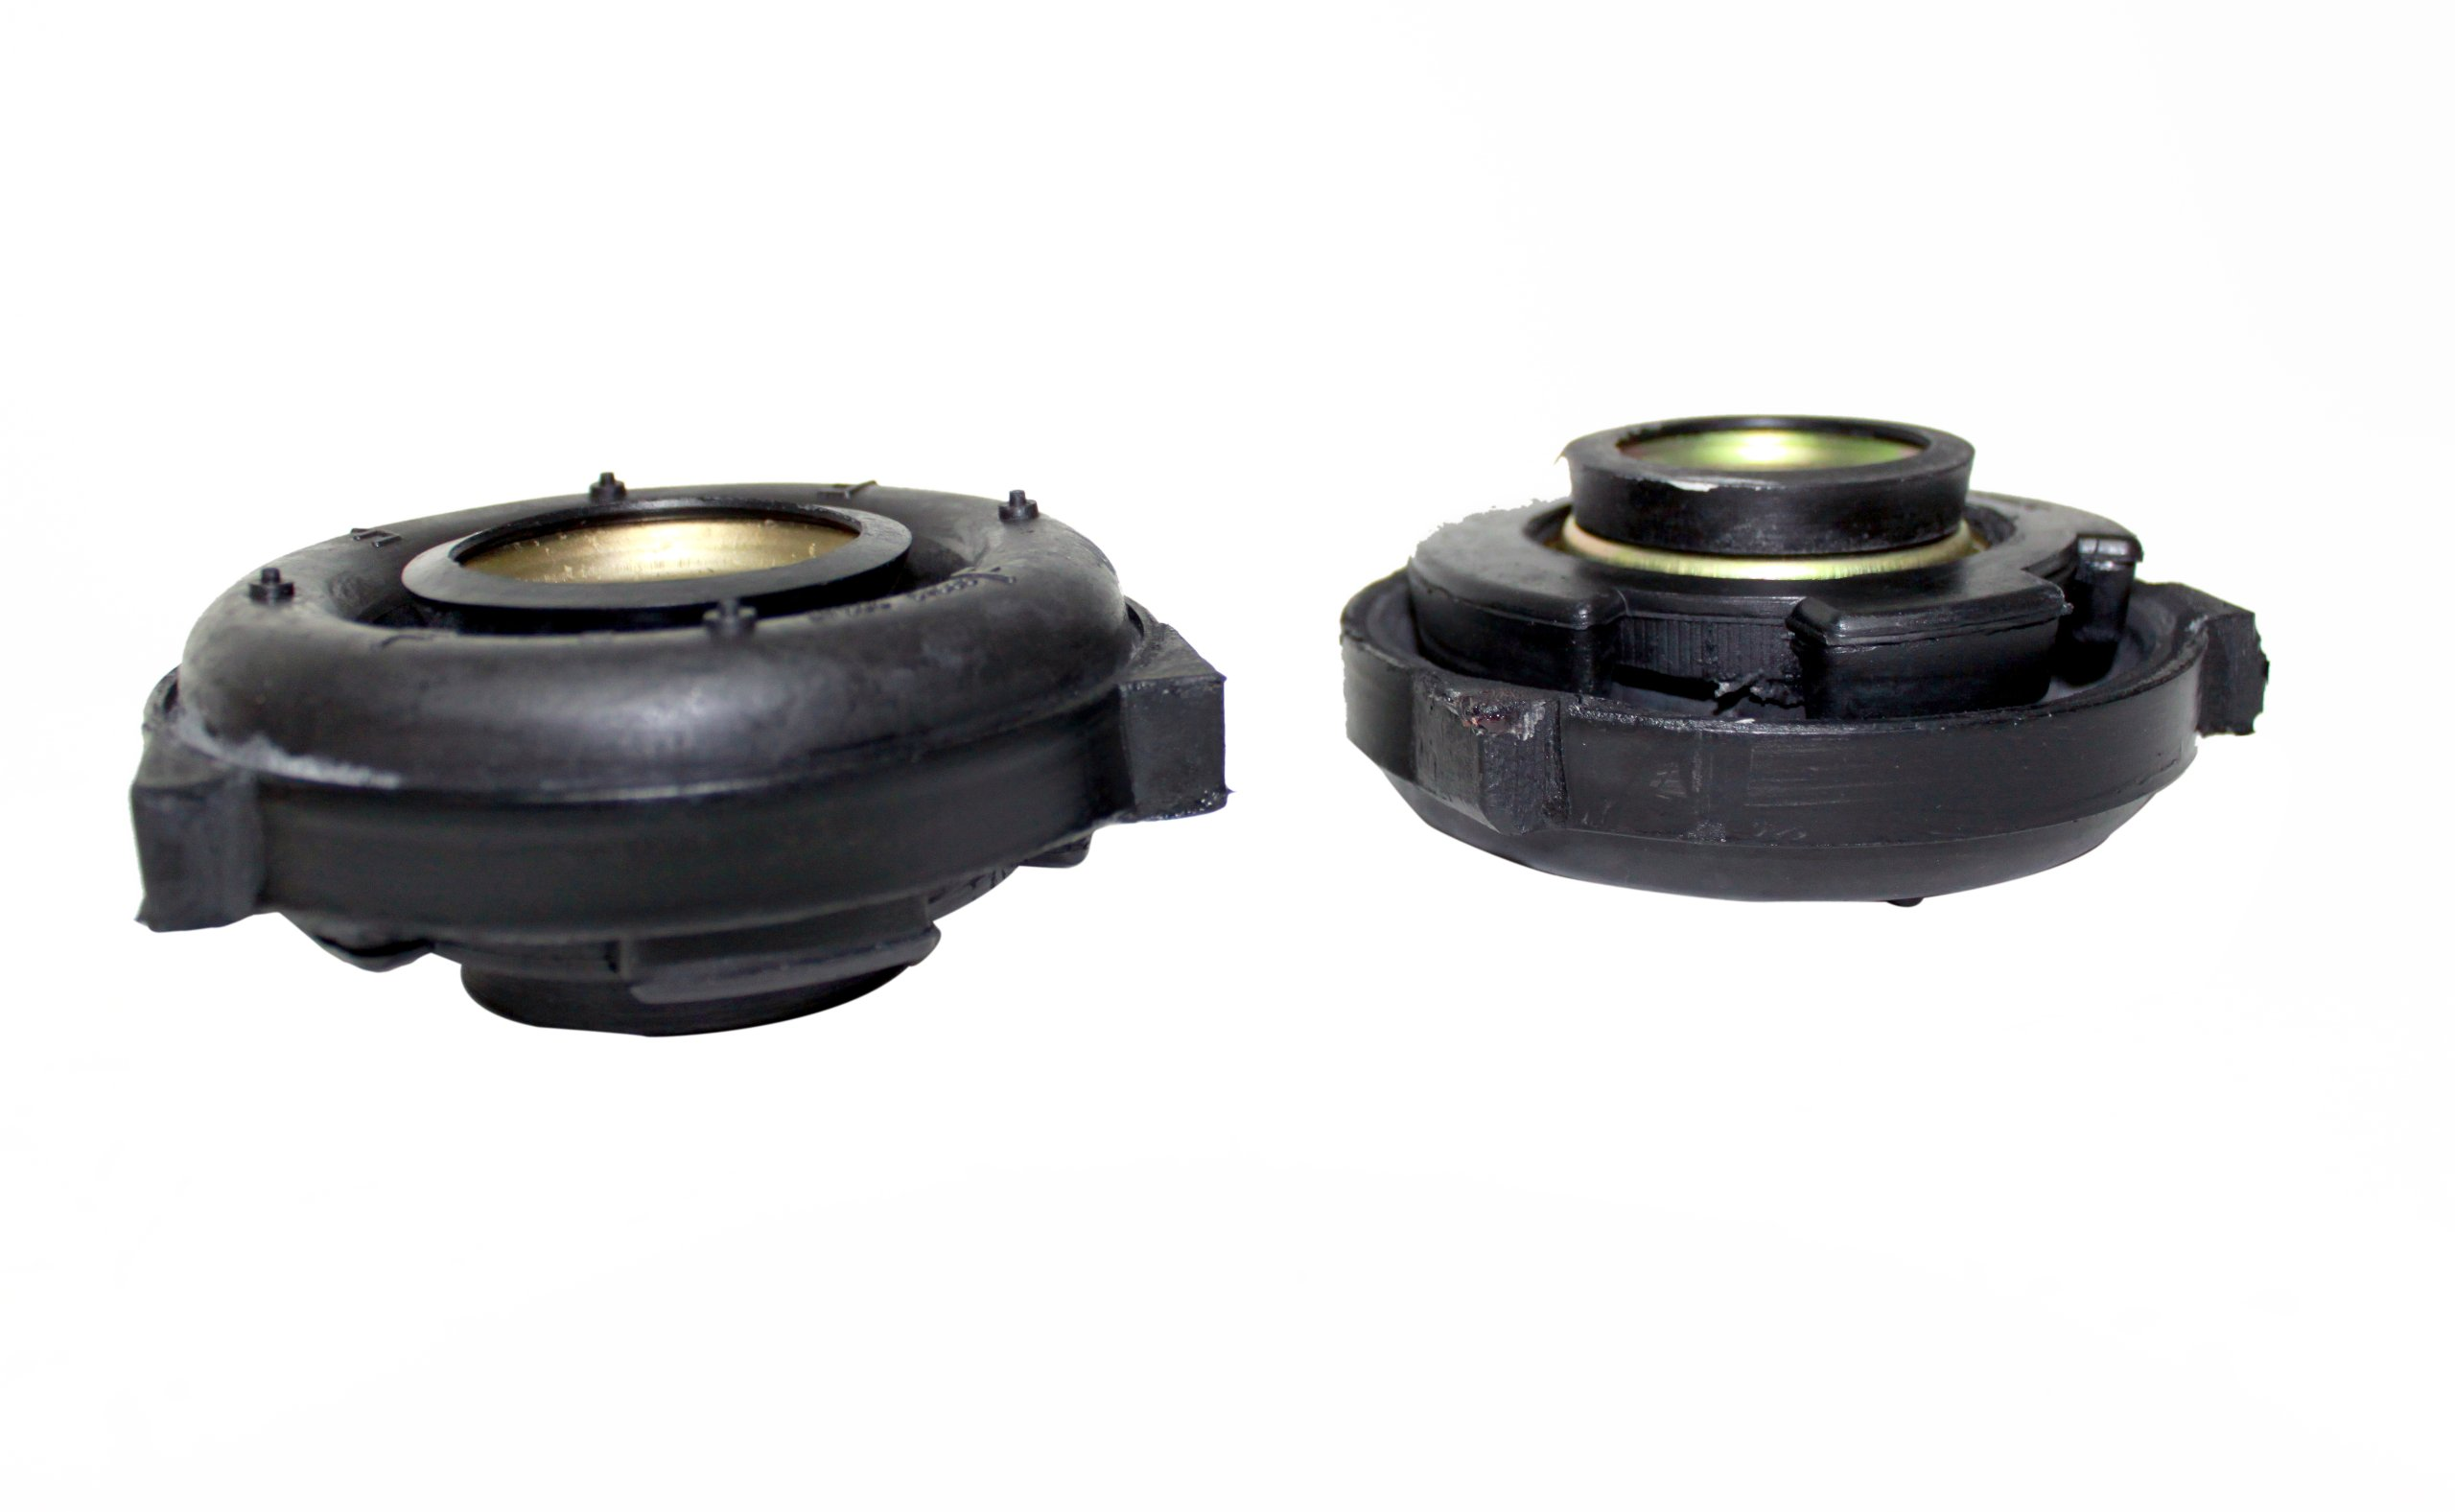 MTC 1010306/37521-VJ525 Driveshaft Center Support with Bearing (37521-VJ525 MTC 1010306)